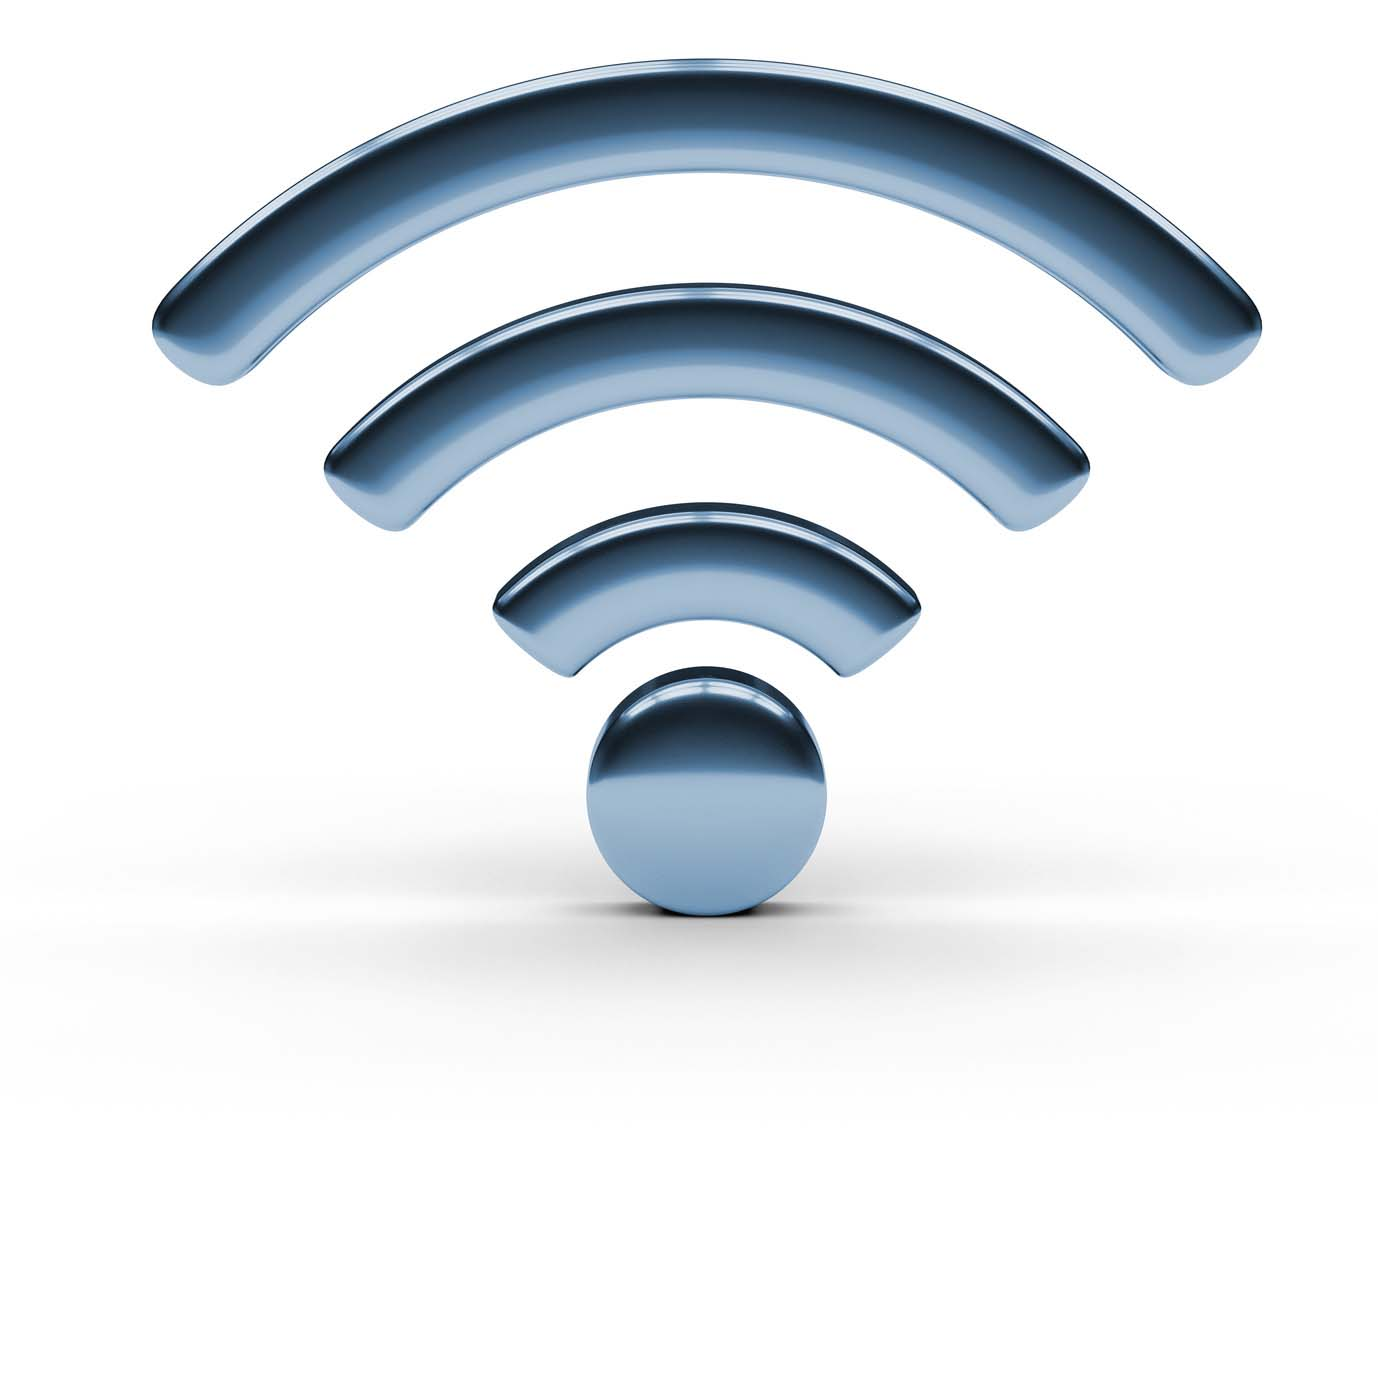 3d illustration of internet wi-fi connection